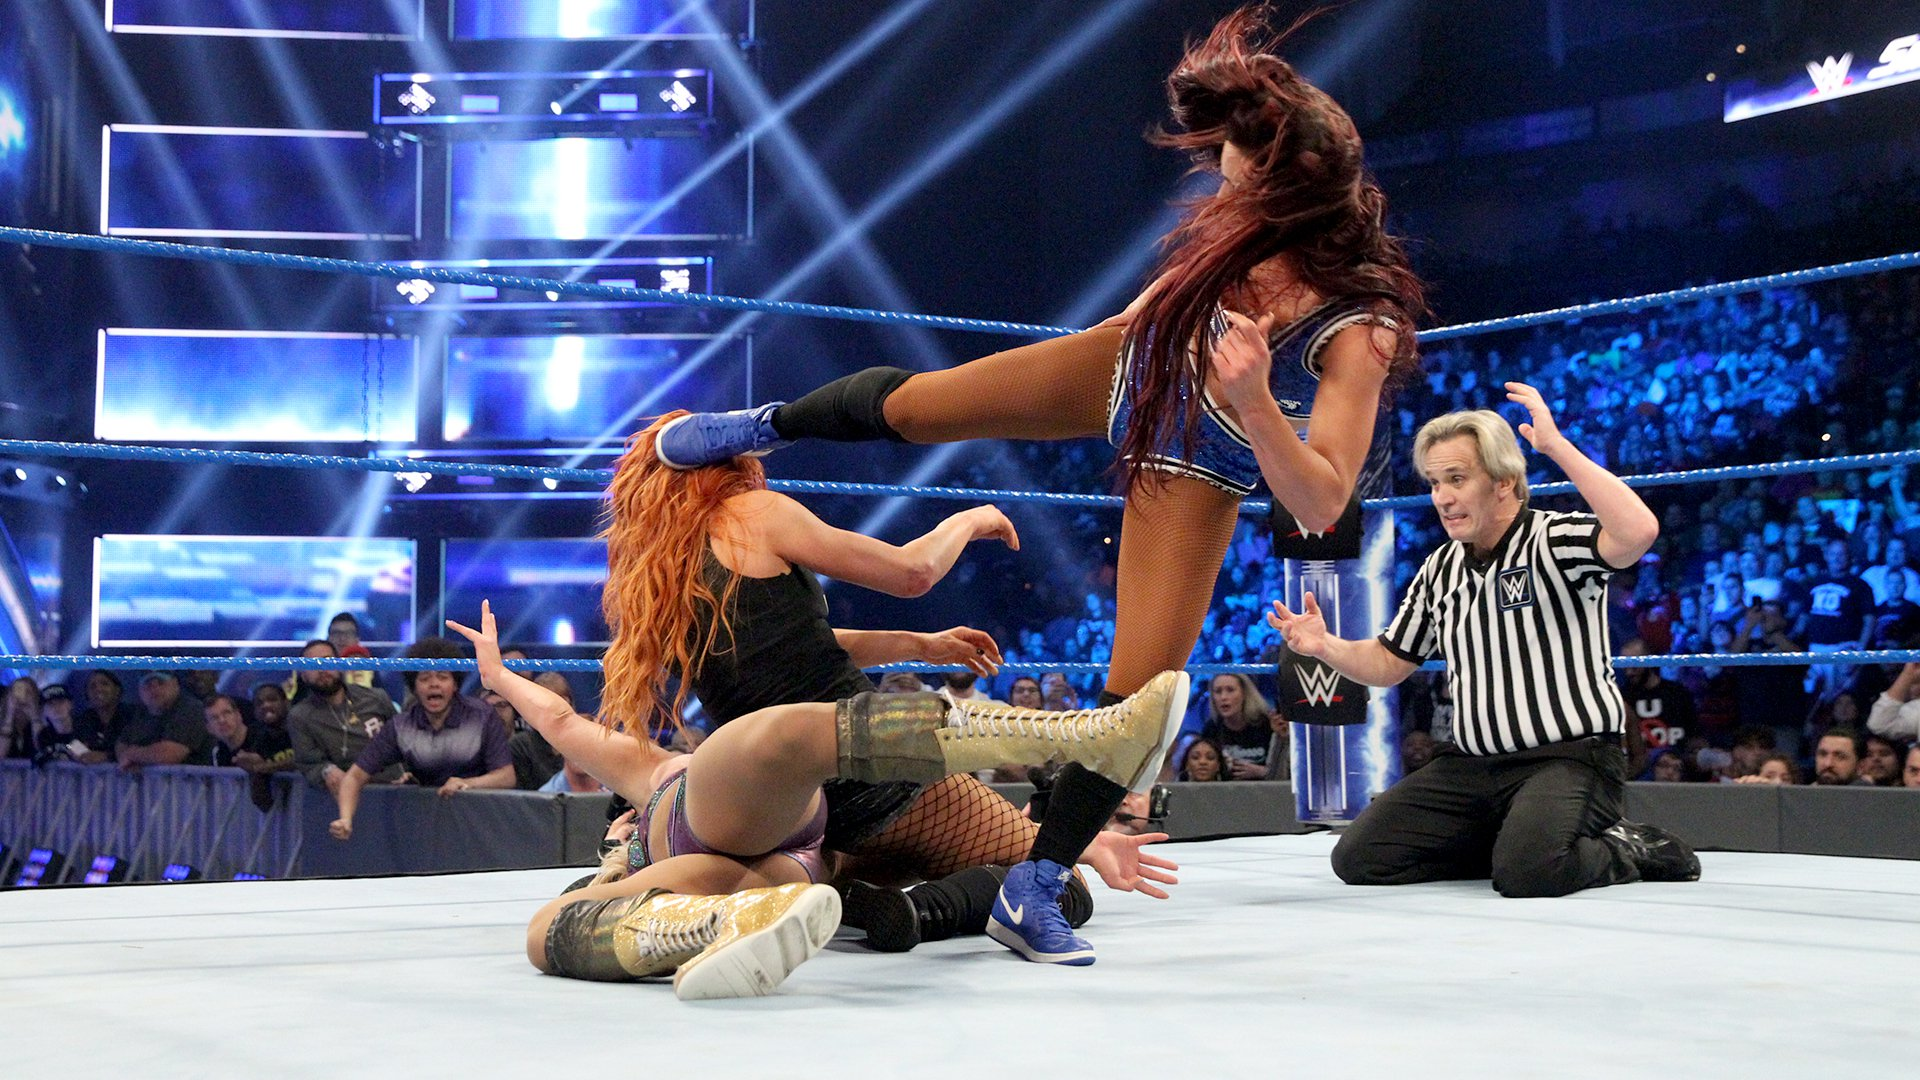 Becky goes for the Dis-arm-her, but Carmella breaks it up.